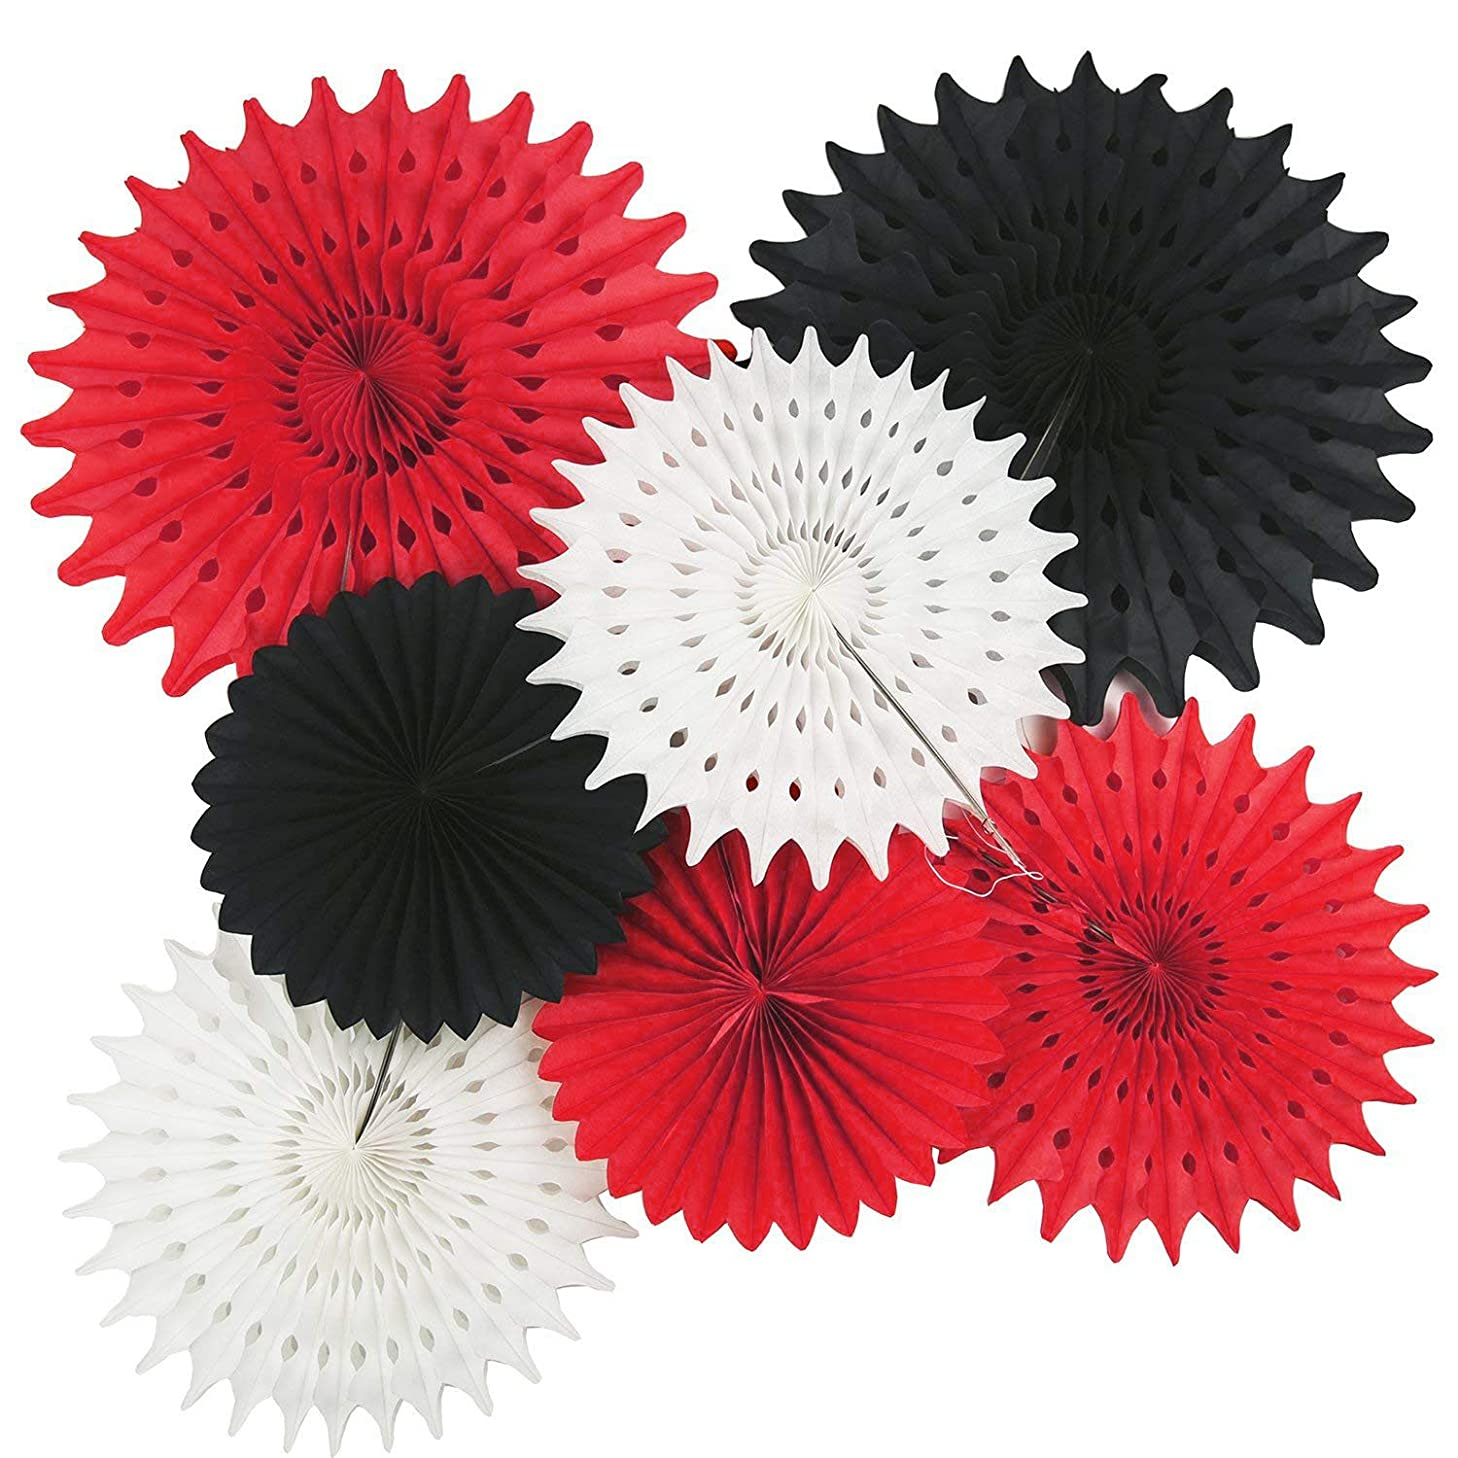 Qian's Party Mickey Mouse Party Supplies Red Black White Party Decorations 7pcs Tissue Paper Fans for Minnie Mouse Birthday Party Decorations Red Black Birthday Party Baby Shower Decortions